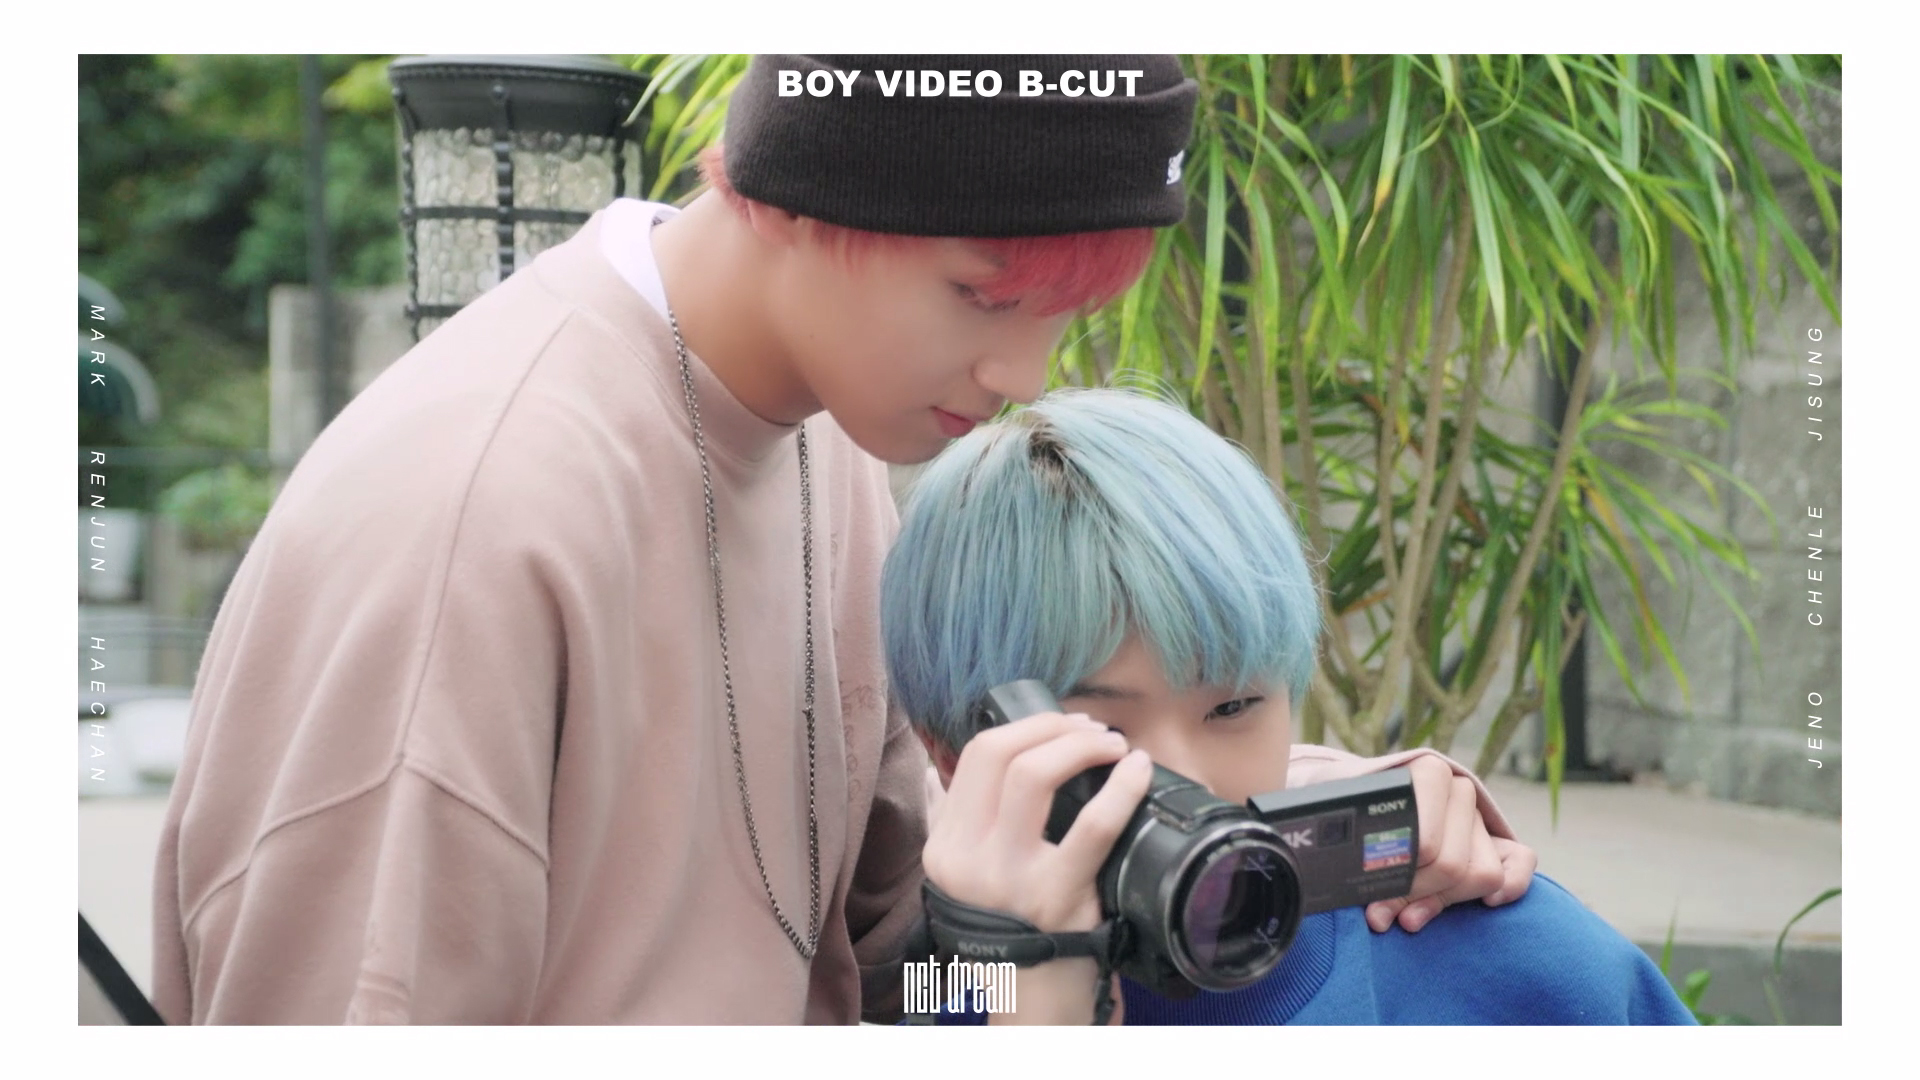 NCT DREAM BOY VIDEO B-CUT #7